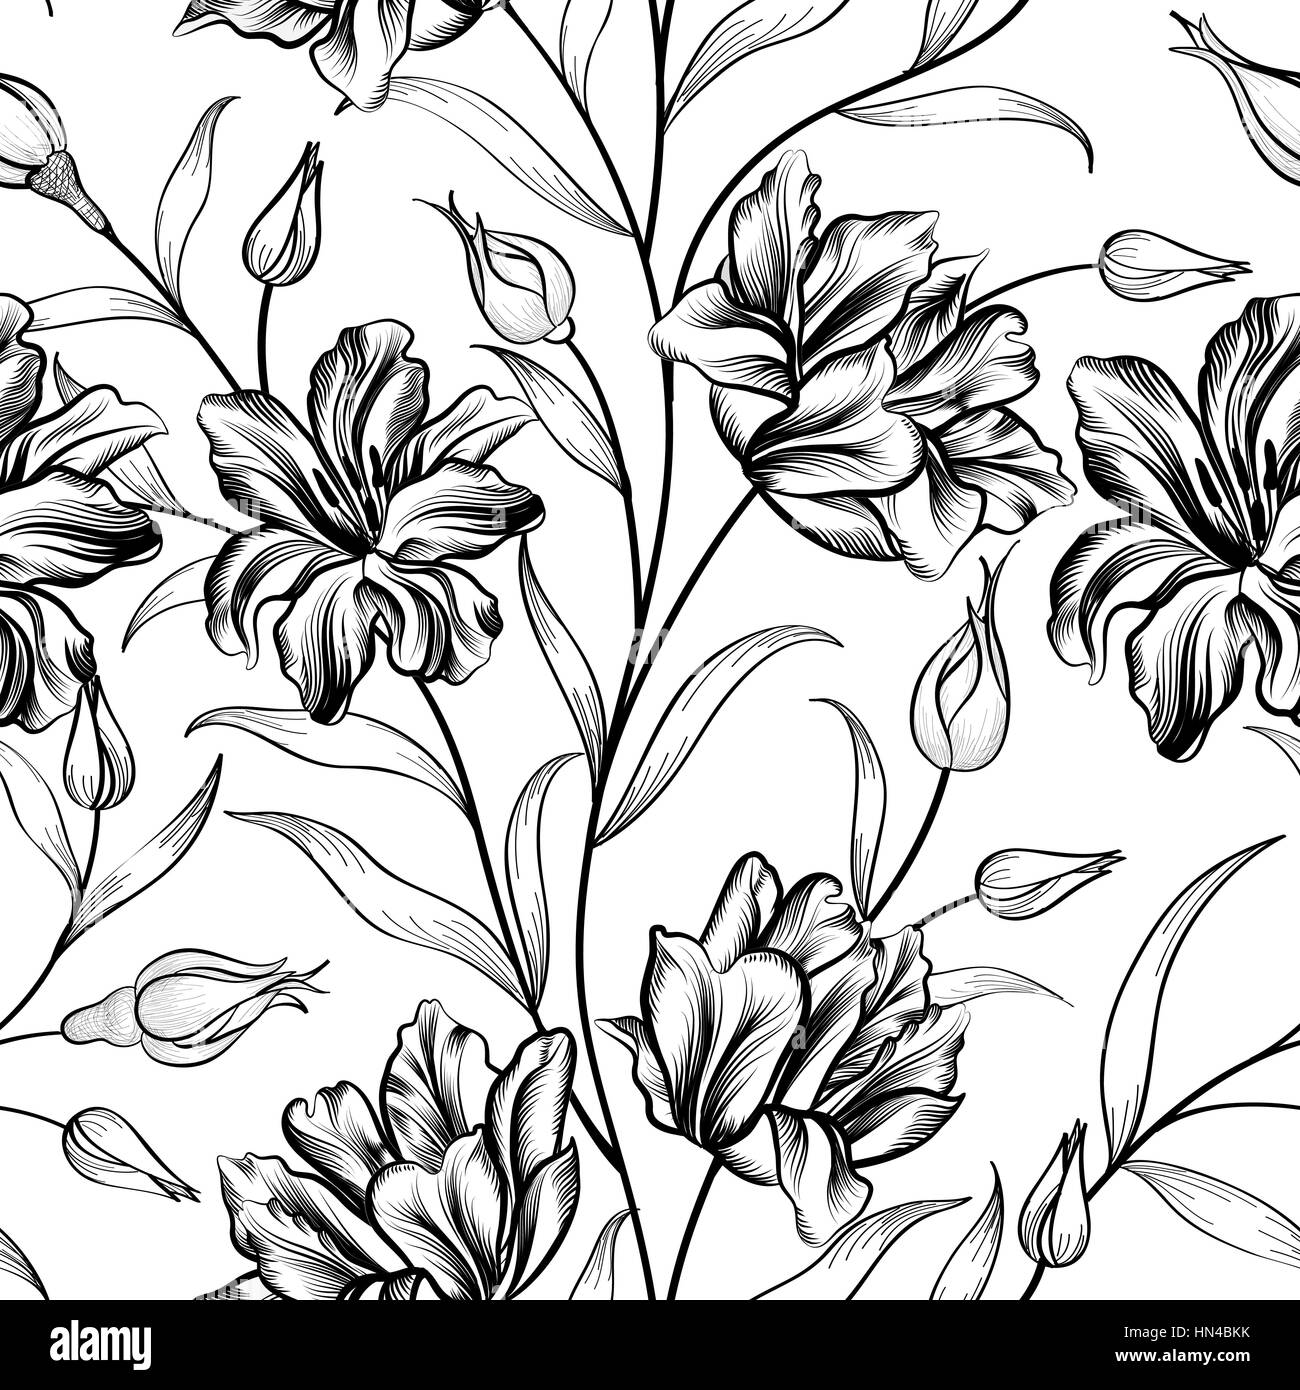 Floral Background Flower Pattern Flourish Seamless Textured